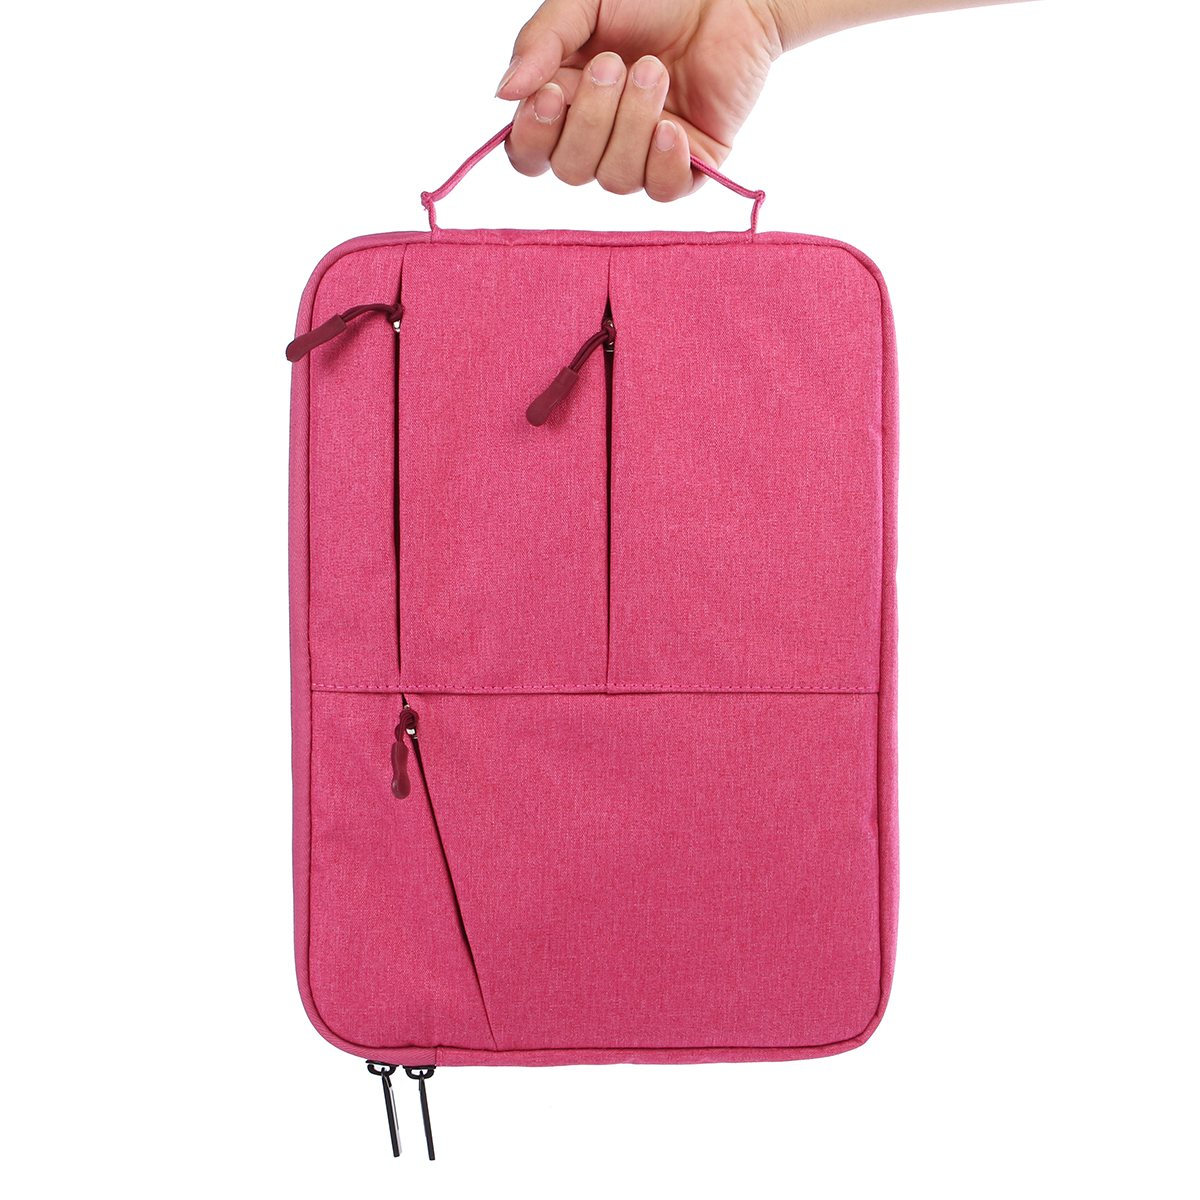 15Inch Waterproof Nylon Laptop Sleeve Laptop Bag Case for MacBook Pro Bag with Zipper fo ...